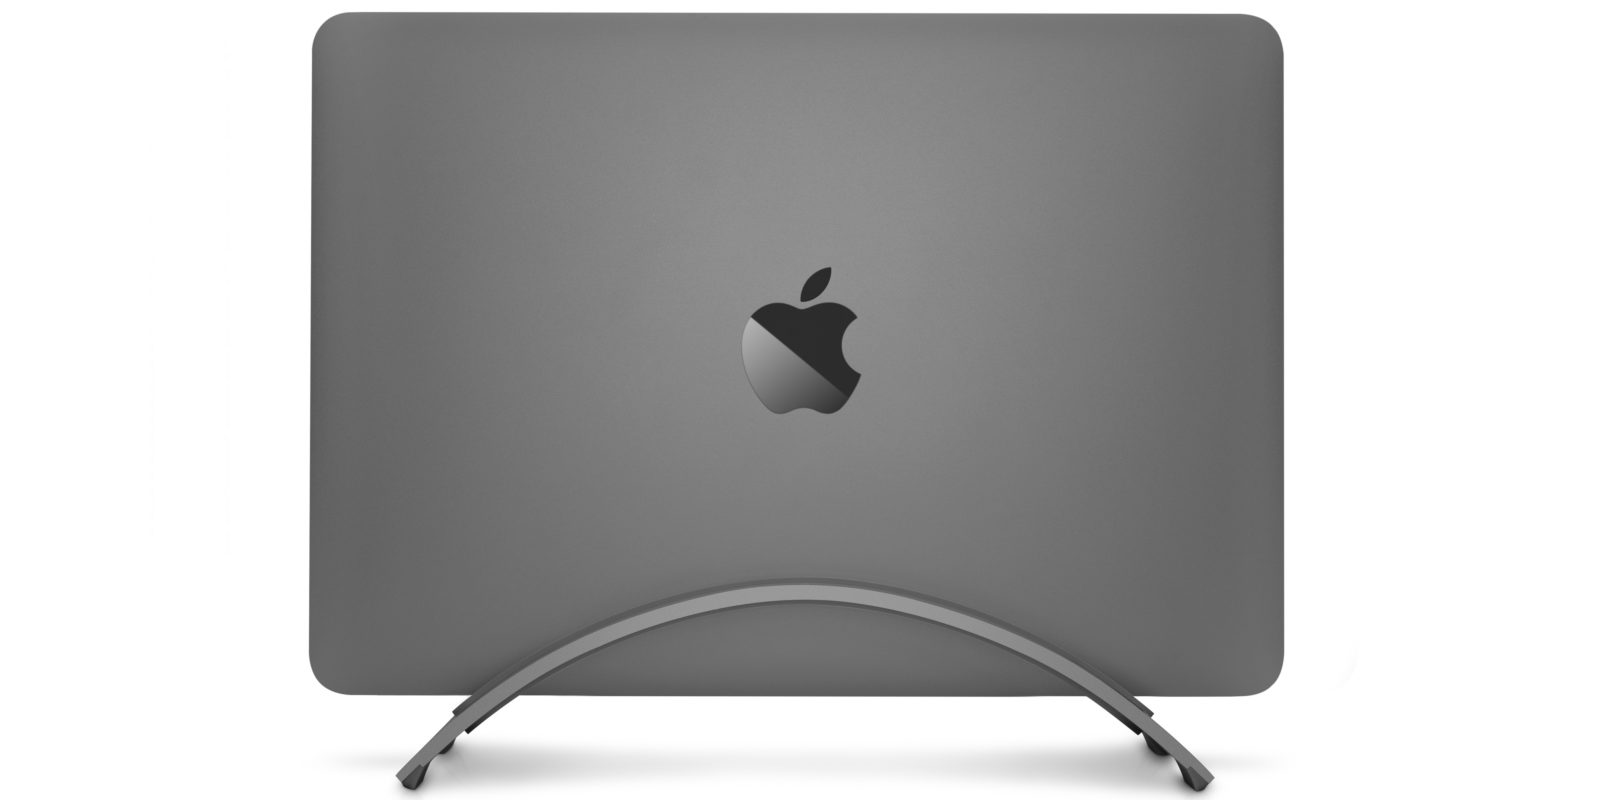 New MacBook Pro BookArc in color-matching Space Gray now available ...